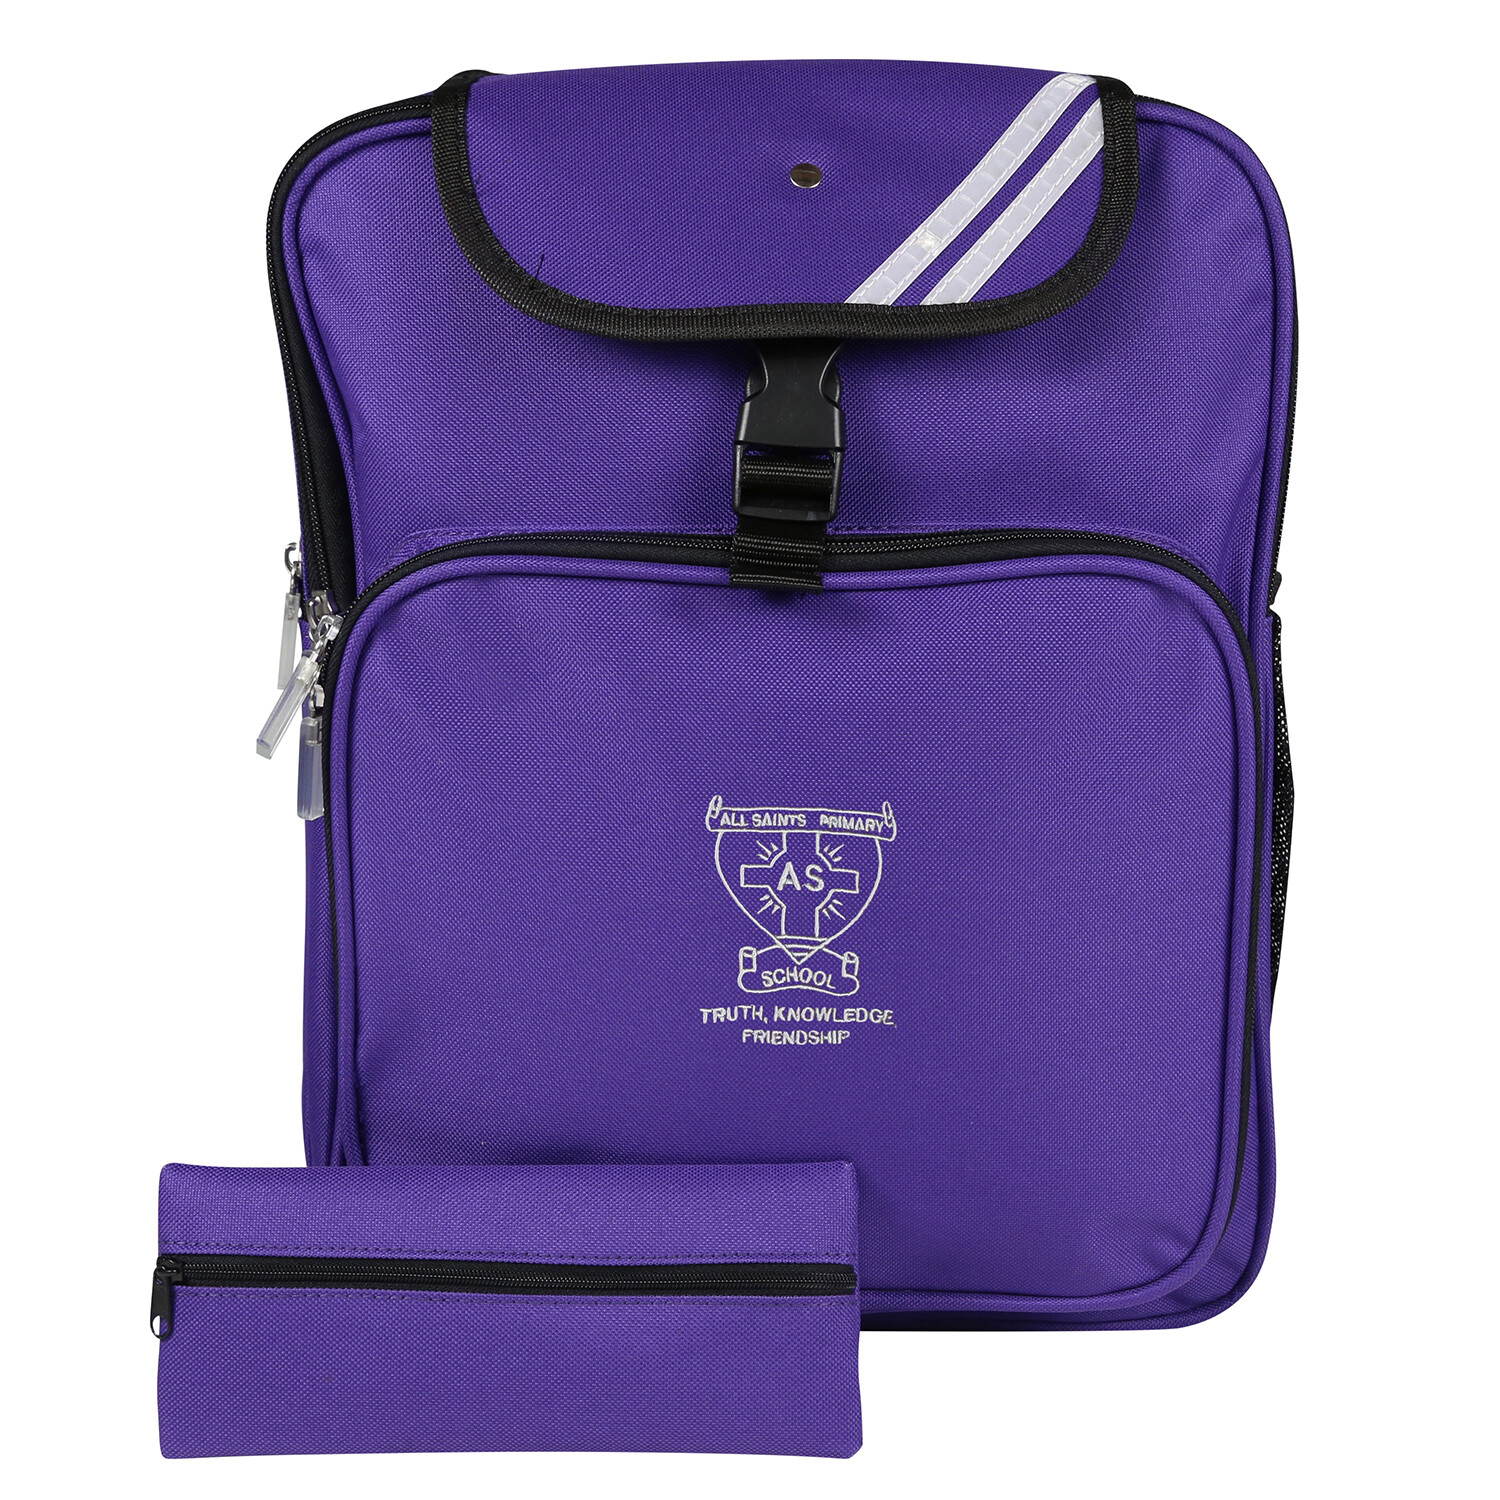 All Saints Primary Backpack (Junior)